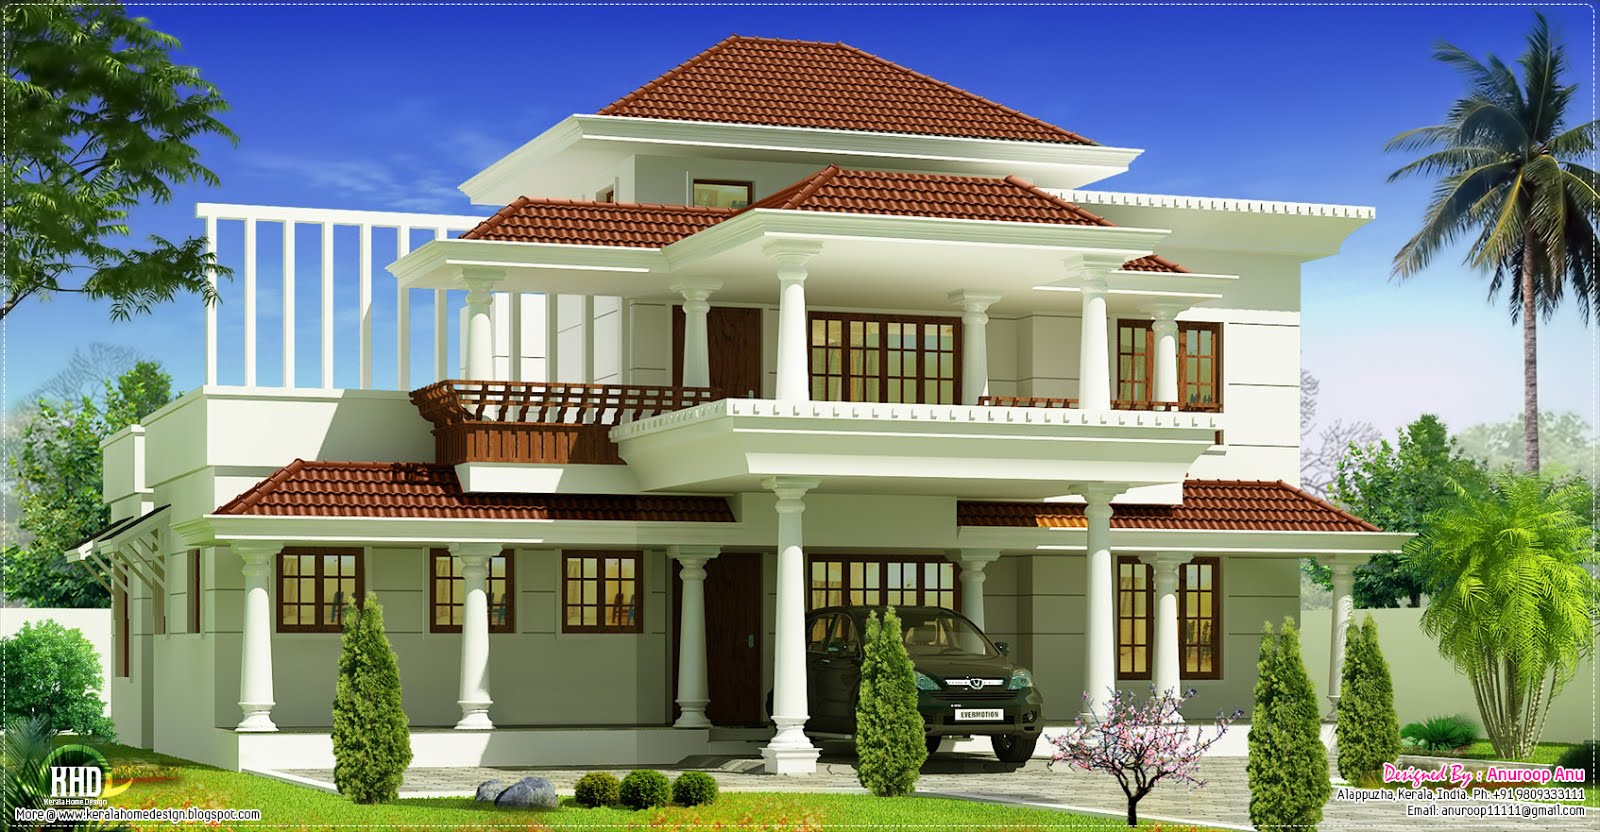 kerala home design image | home design ideas